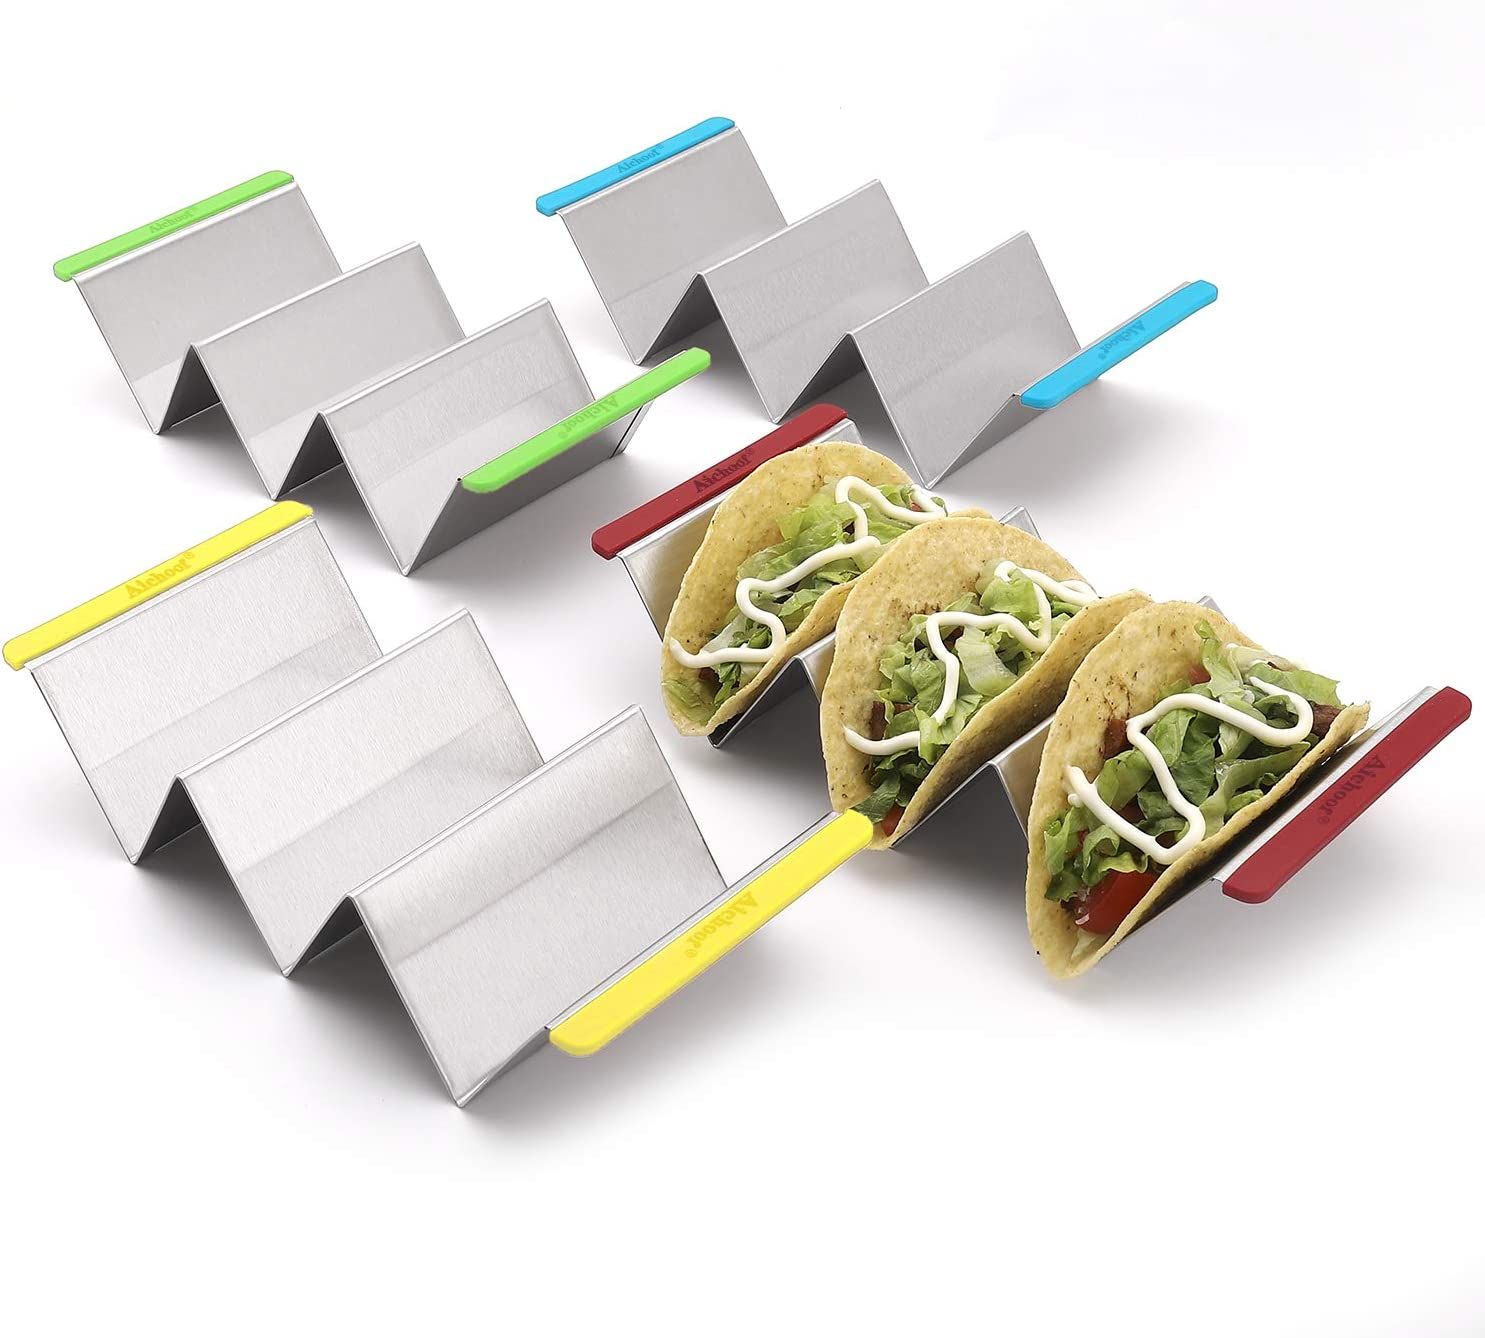 4 Pack Stainless Steel Metal Taco Holder Stands w// Handles by MIDELO KITCHEN